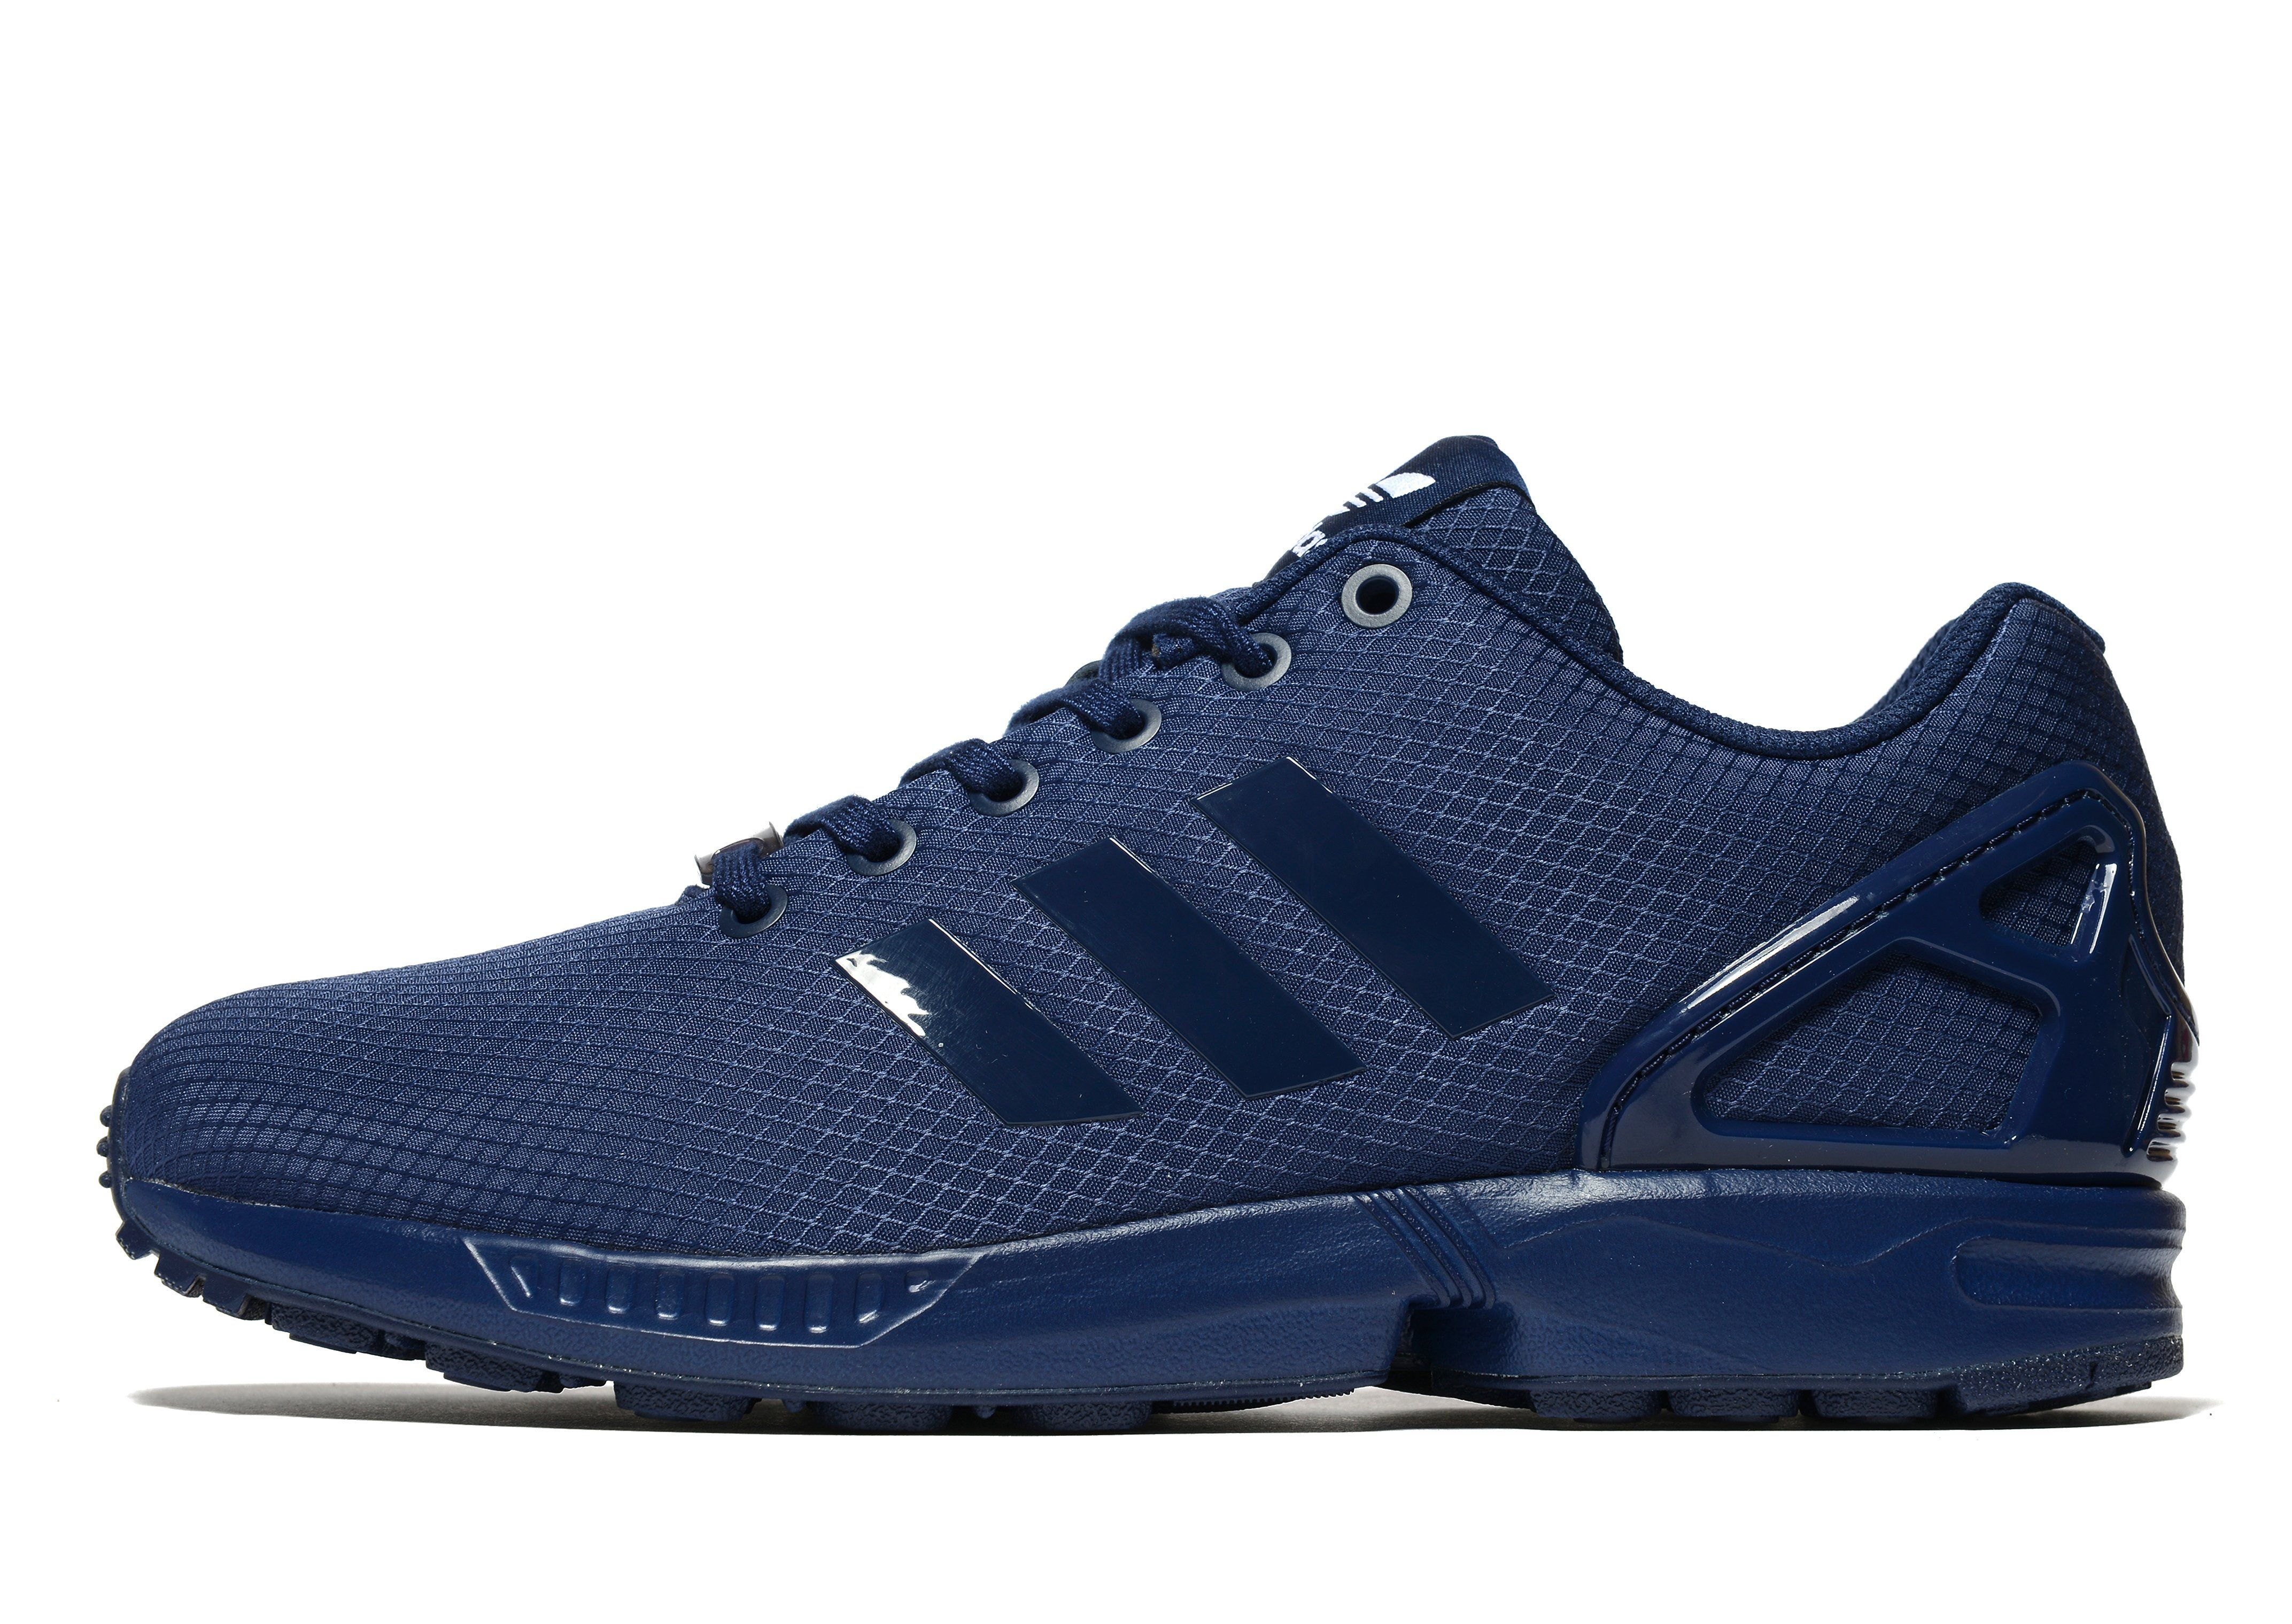 Adidas Flux Blue Smoke